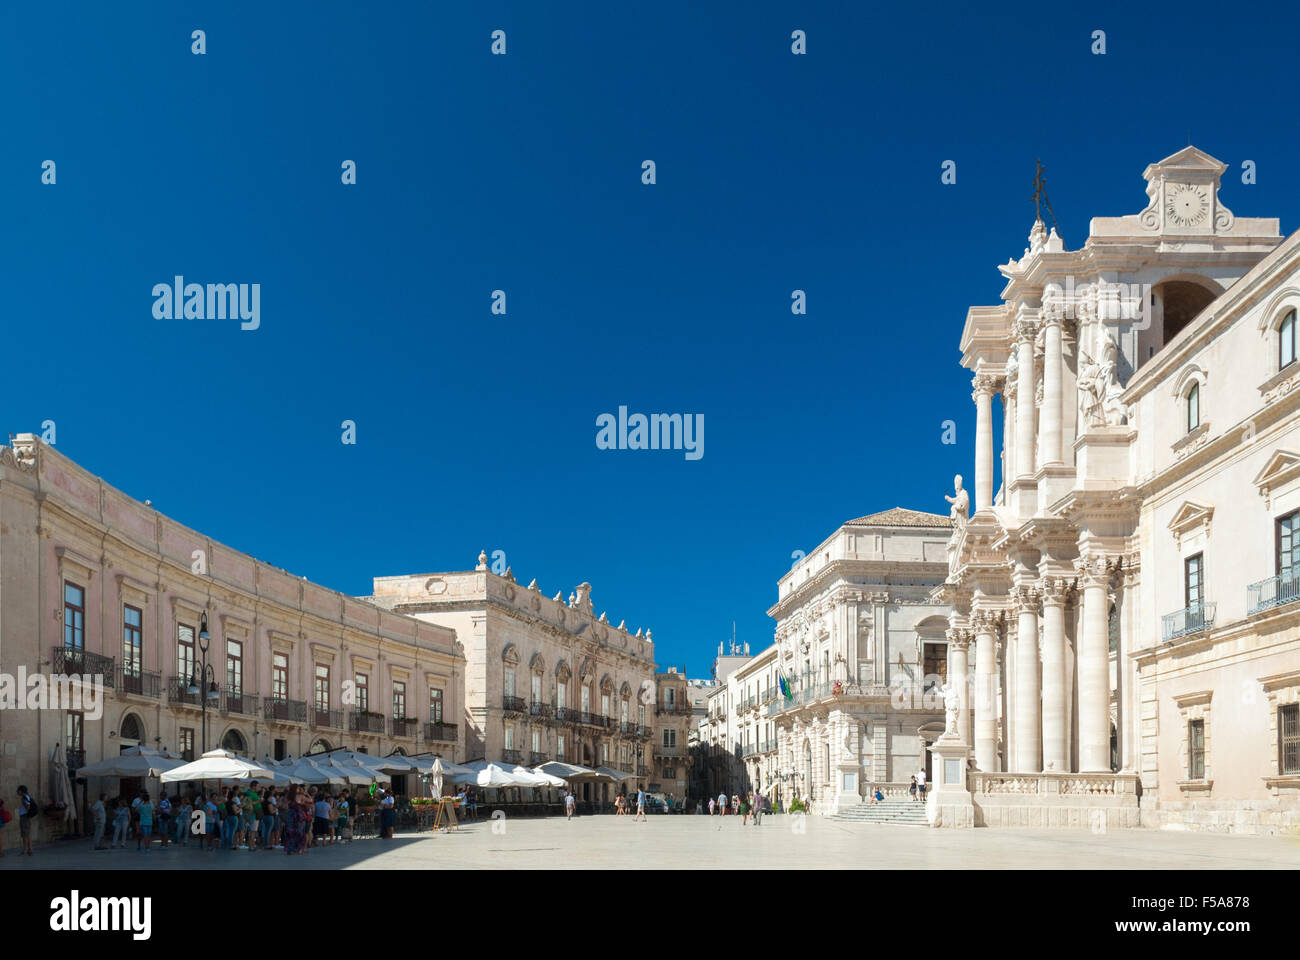 'Piazza Duomo', the main square of Syracuse - Stock Image